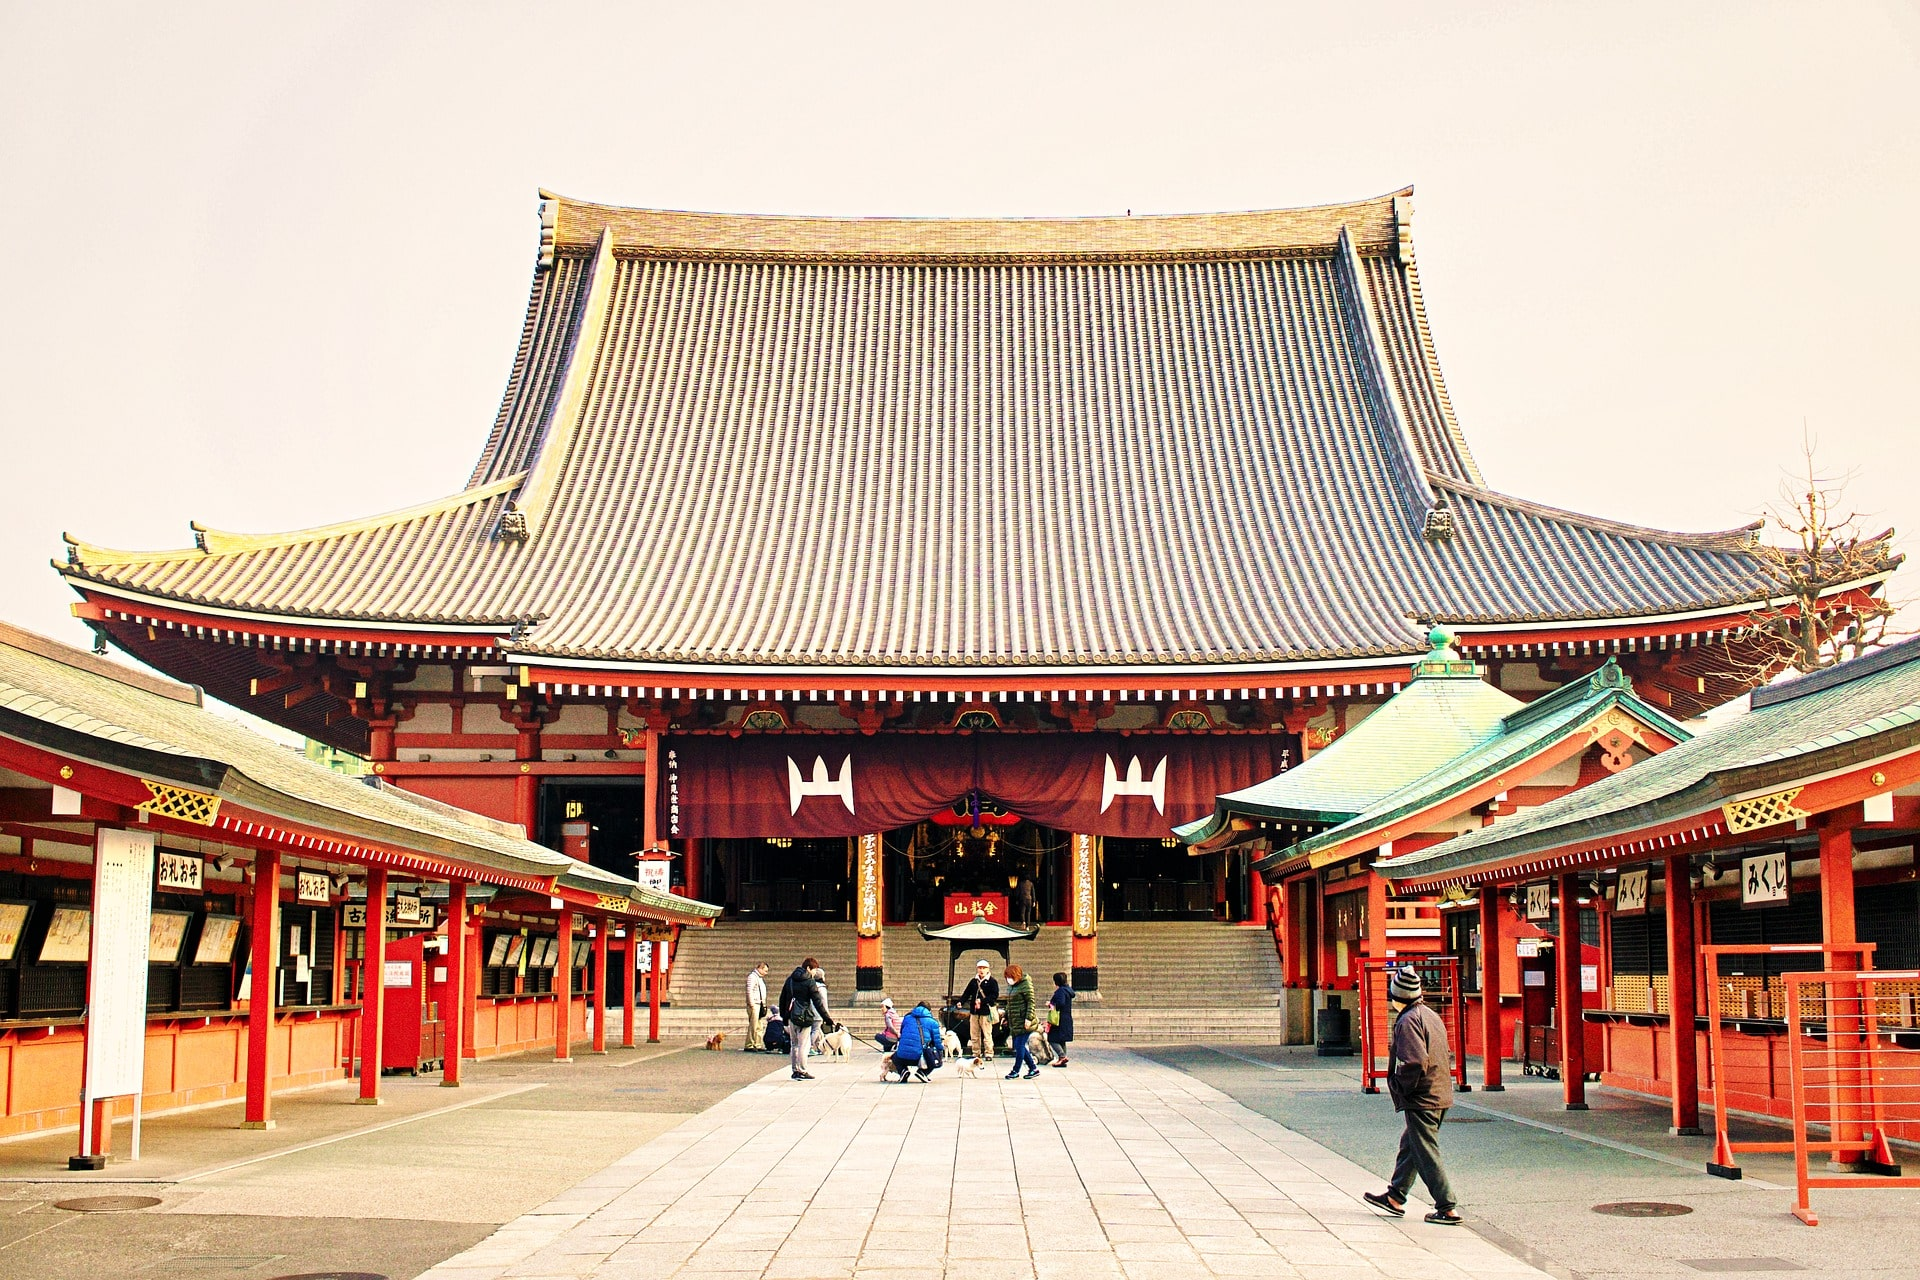 The awesome Senso-ji temple is one of the top rated attractions on TripAdvisor Japan